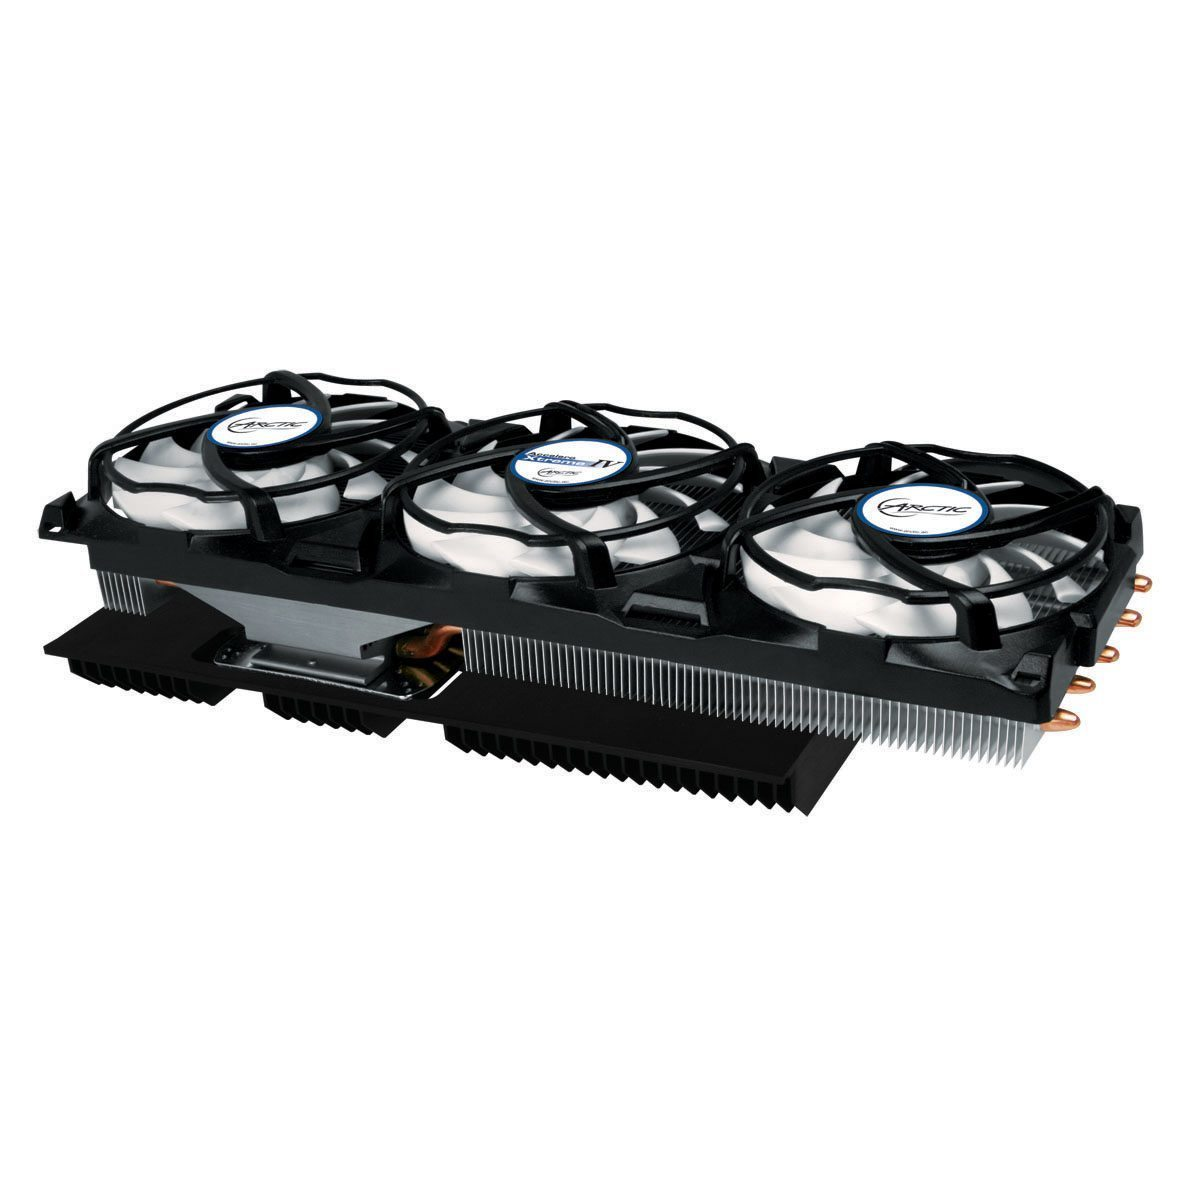 Arctic Cooling Accelero Xtreme IV VGA Cooler